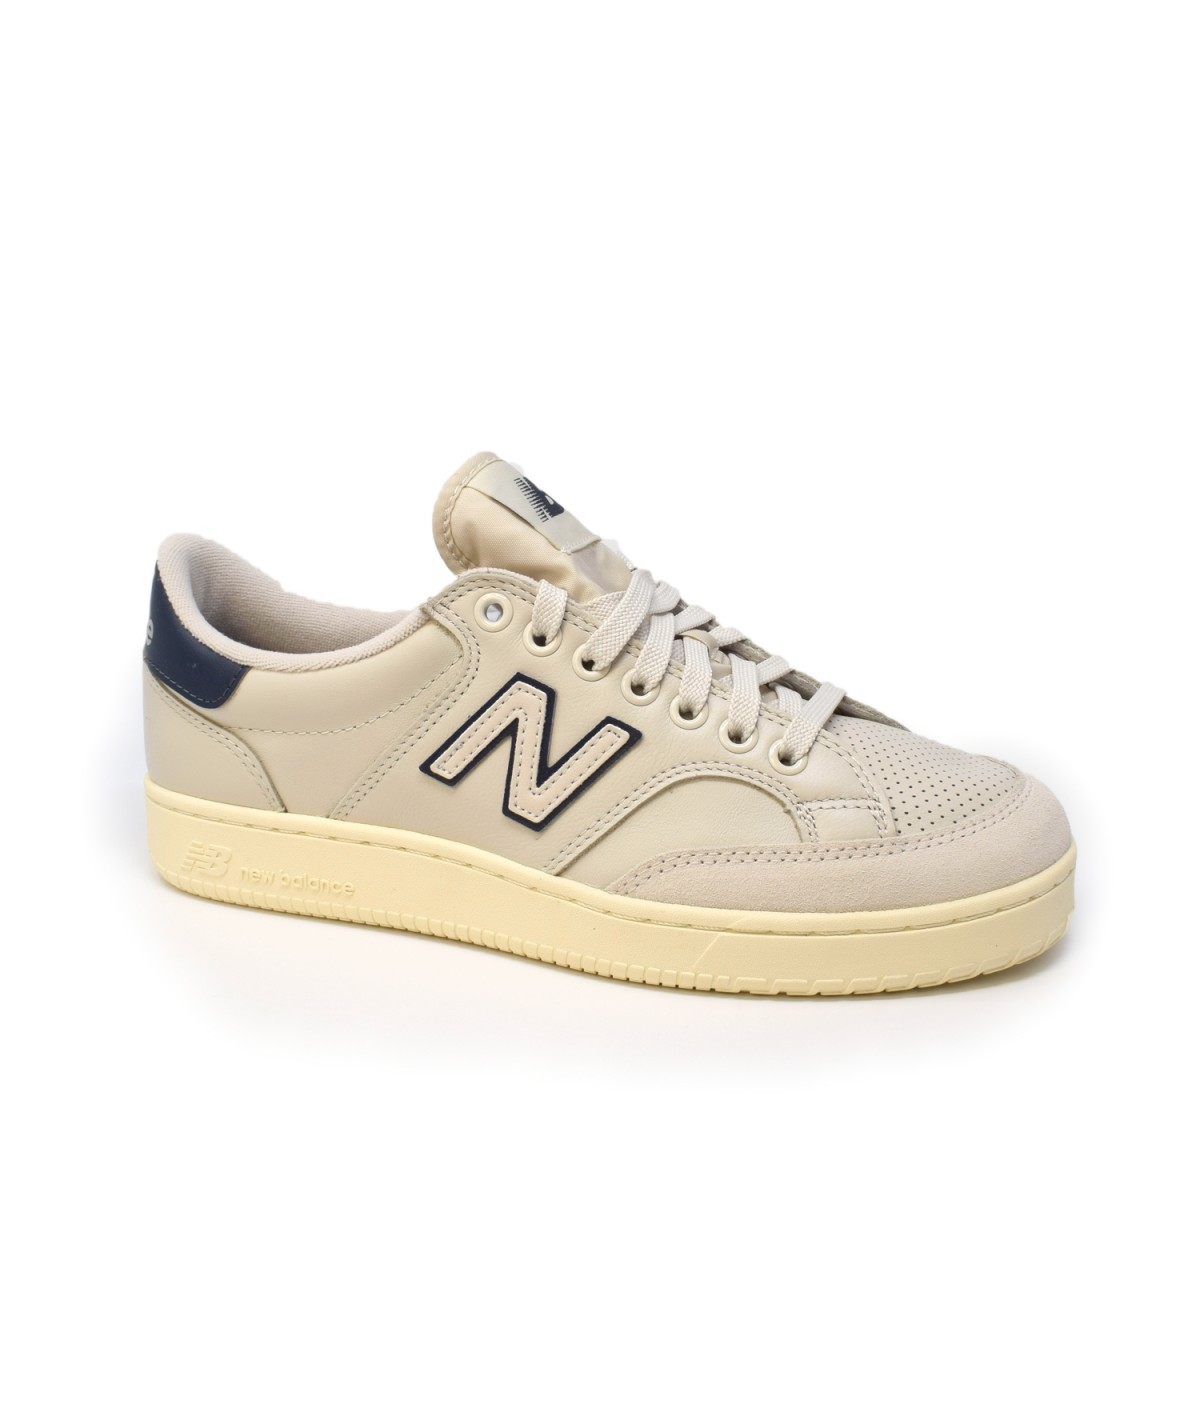 New Balance Proctcbb Sneaker men grey